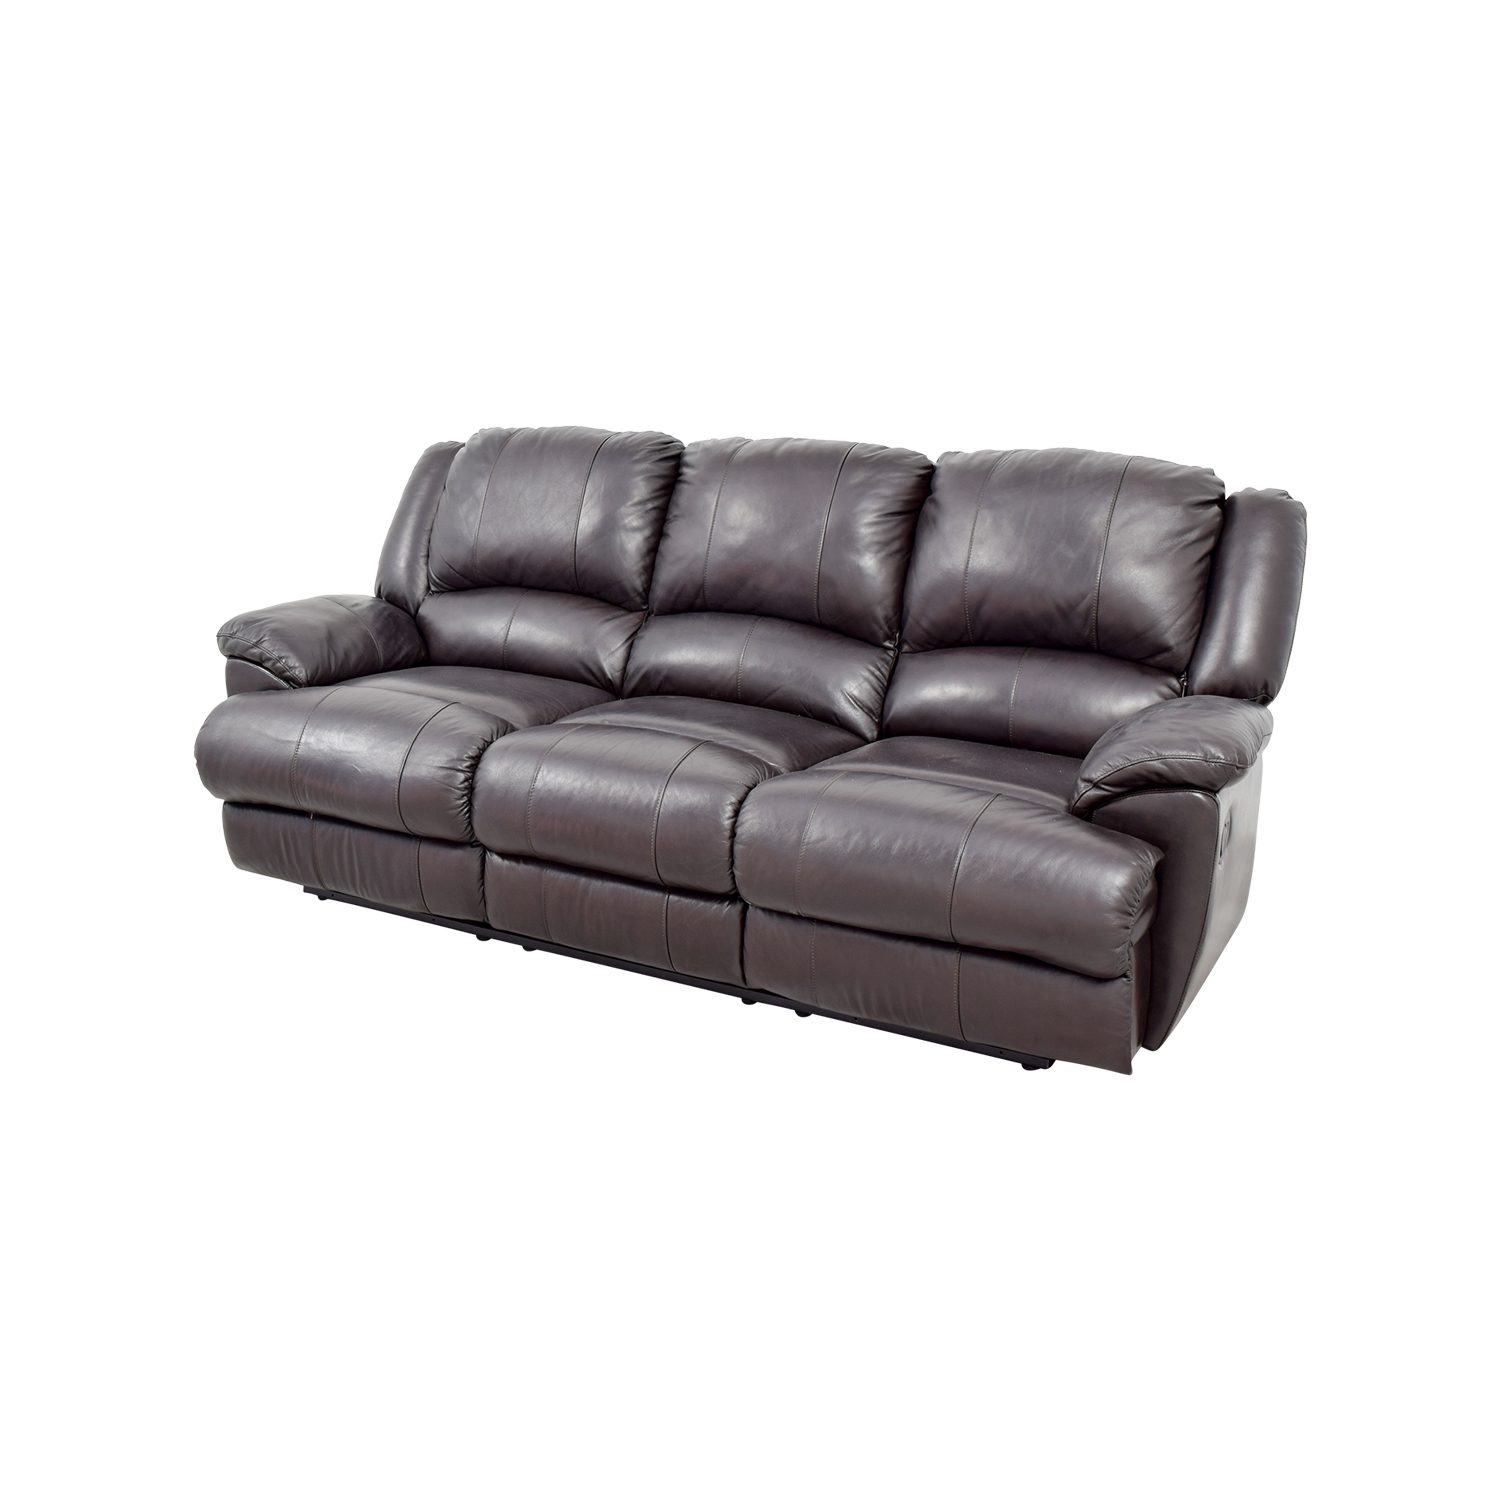 Leather Sofa Price: Jennifer Convertibles Jennifer Convertibles